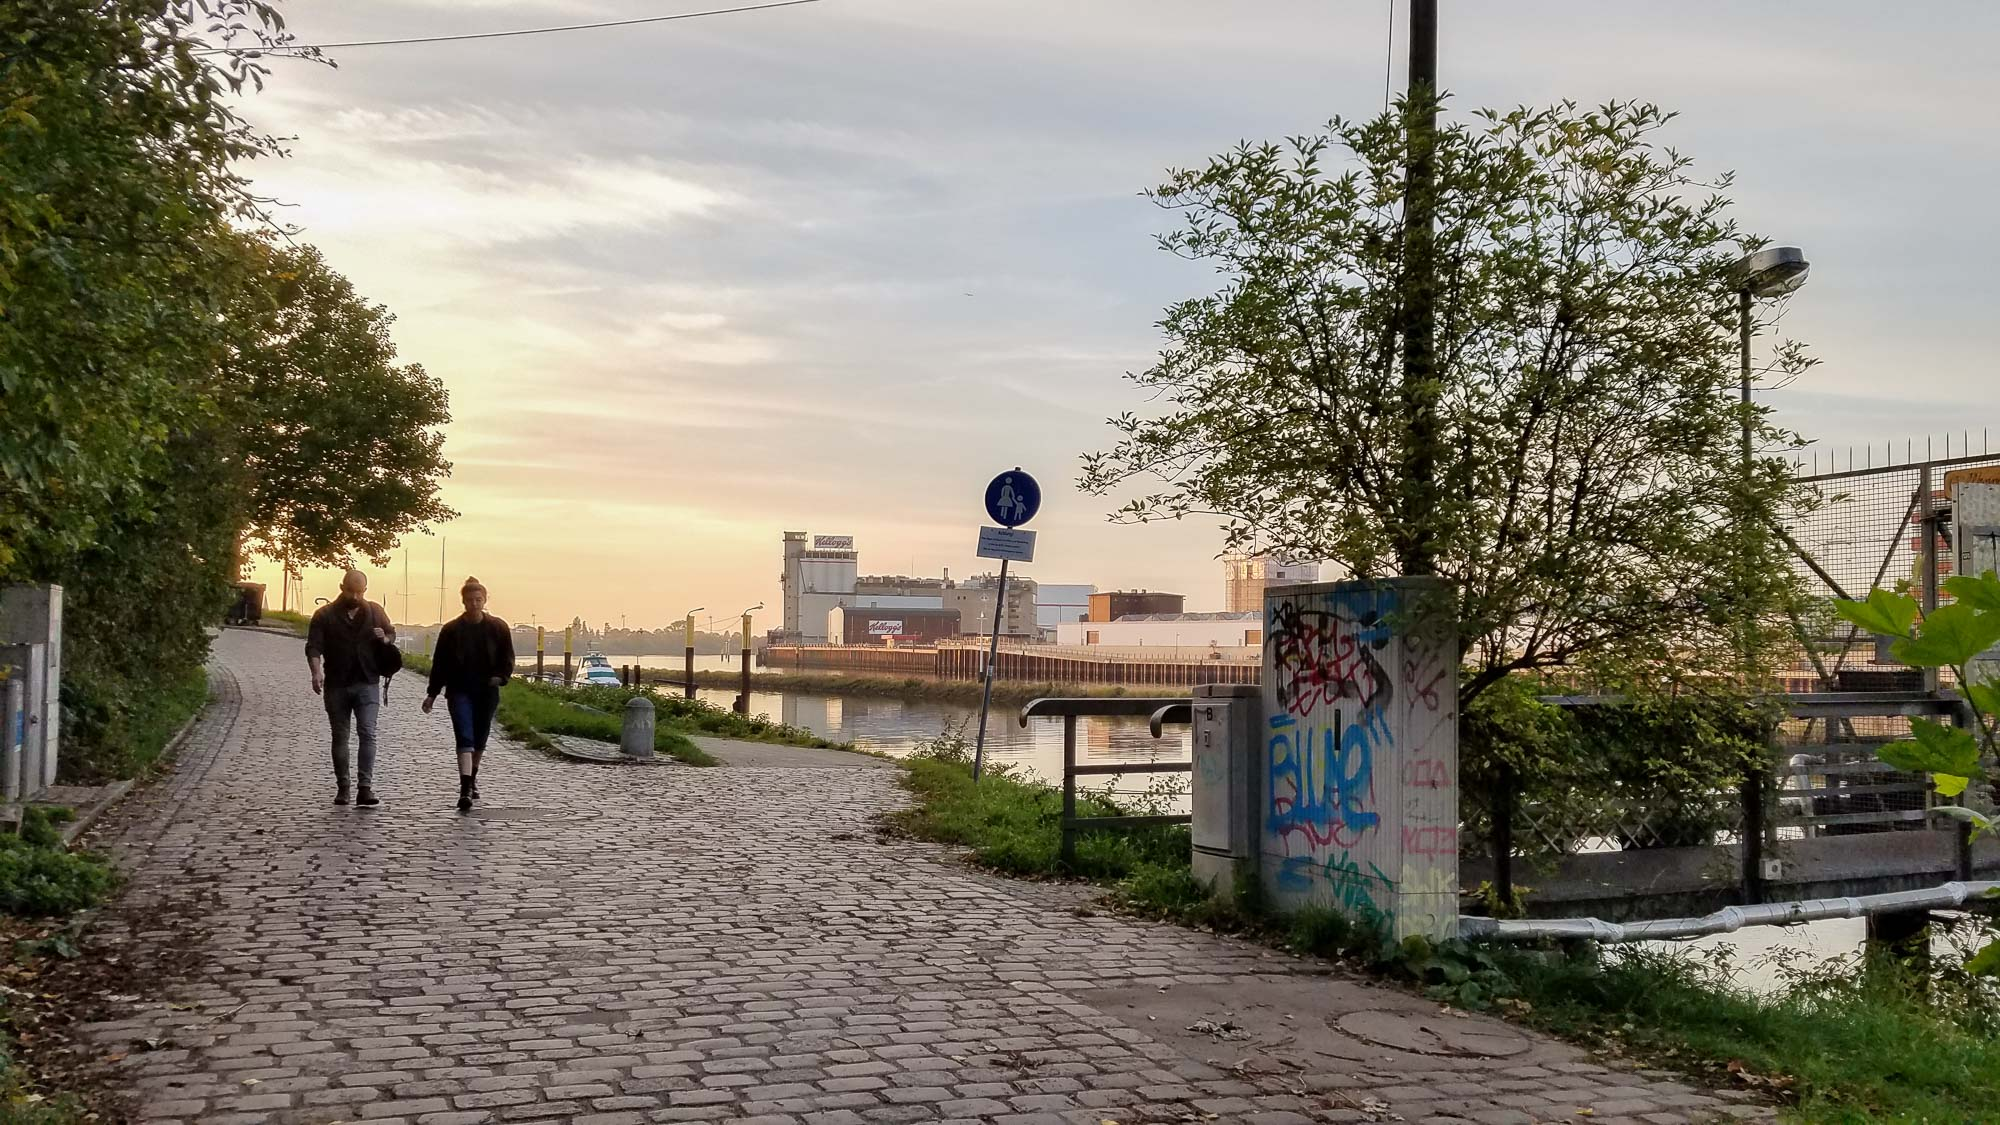 The walk back from Fun Factory in Bremen, Germany, along the Weser River.